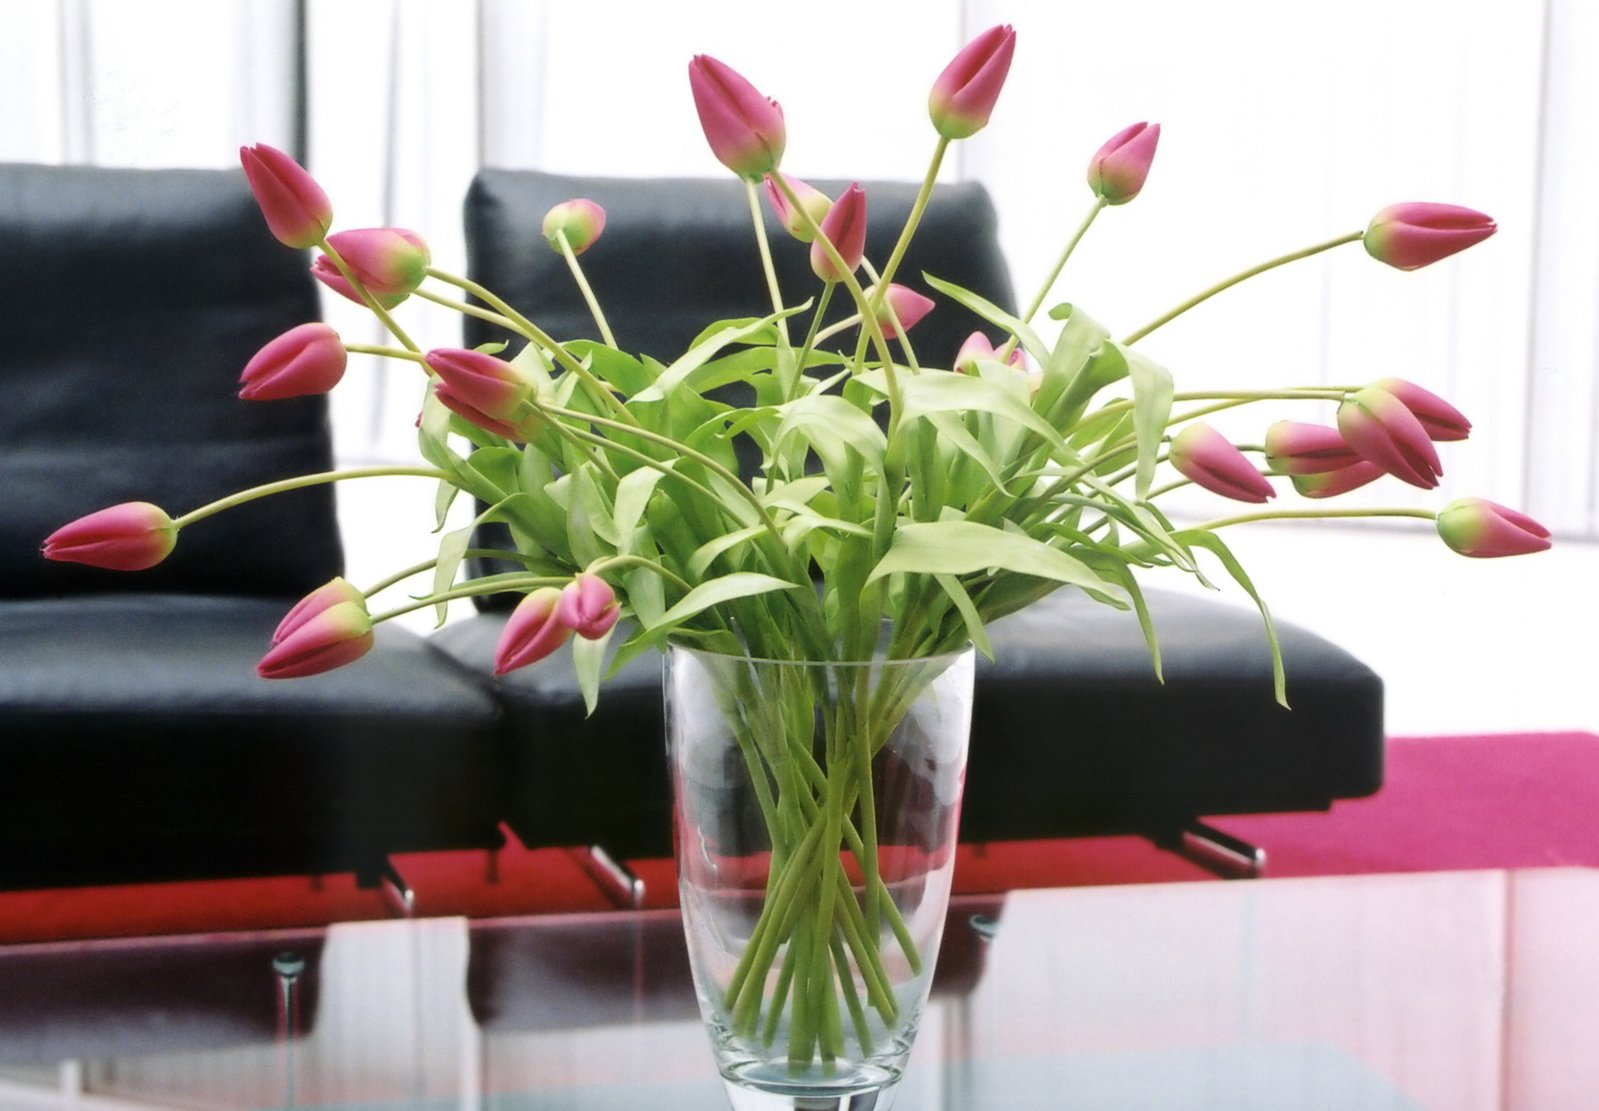 Free flower vase images pictures and royalty free stock photos flowers waiting room reviewsmspy